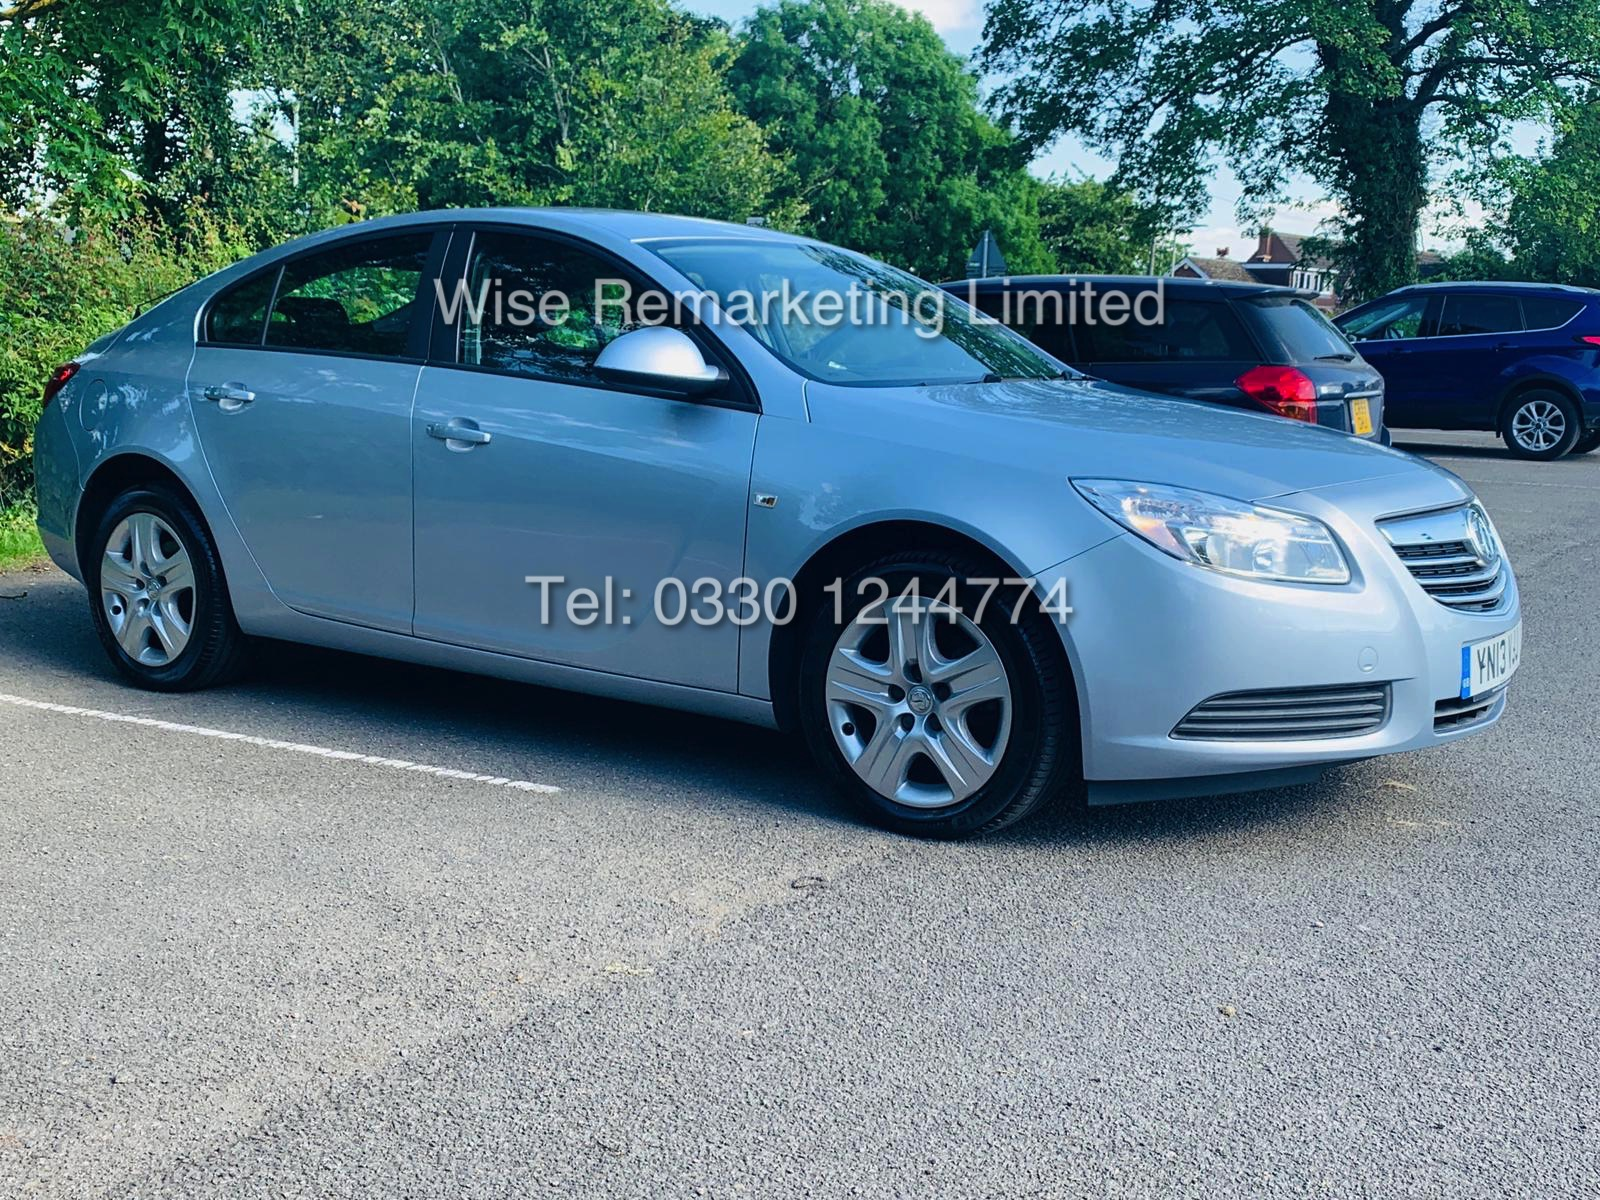 VAUXHALL INSIGNIA 2.0 CDTI ECOFLEX ES 2013 *FSH* 1 OWNER FROM NEW - Image 2 of 30